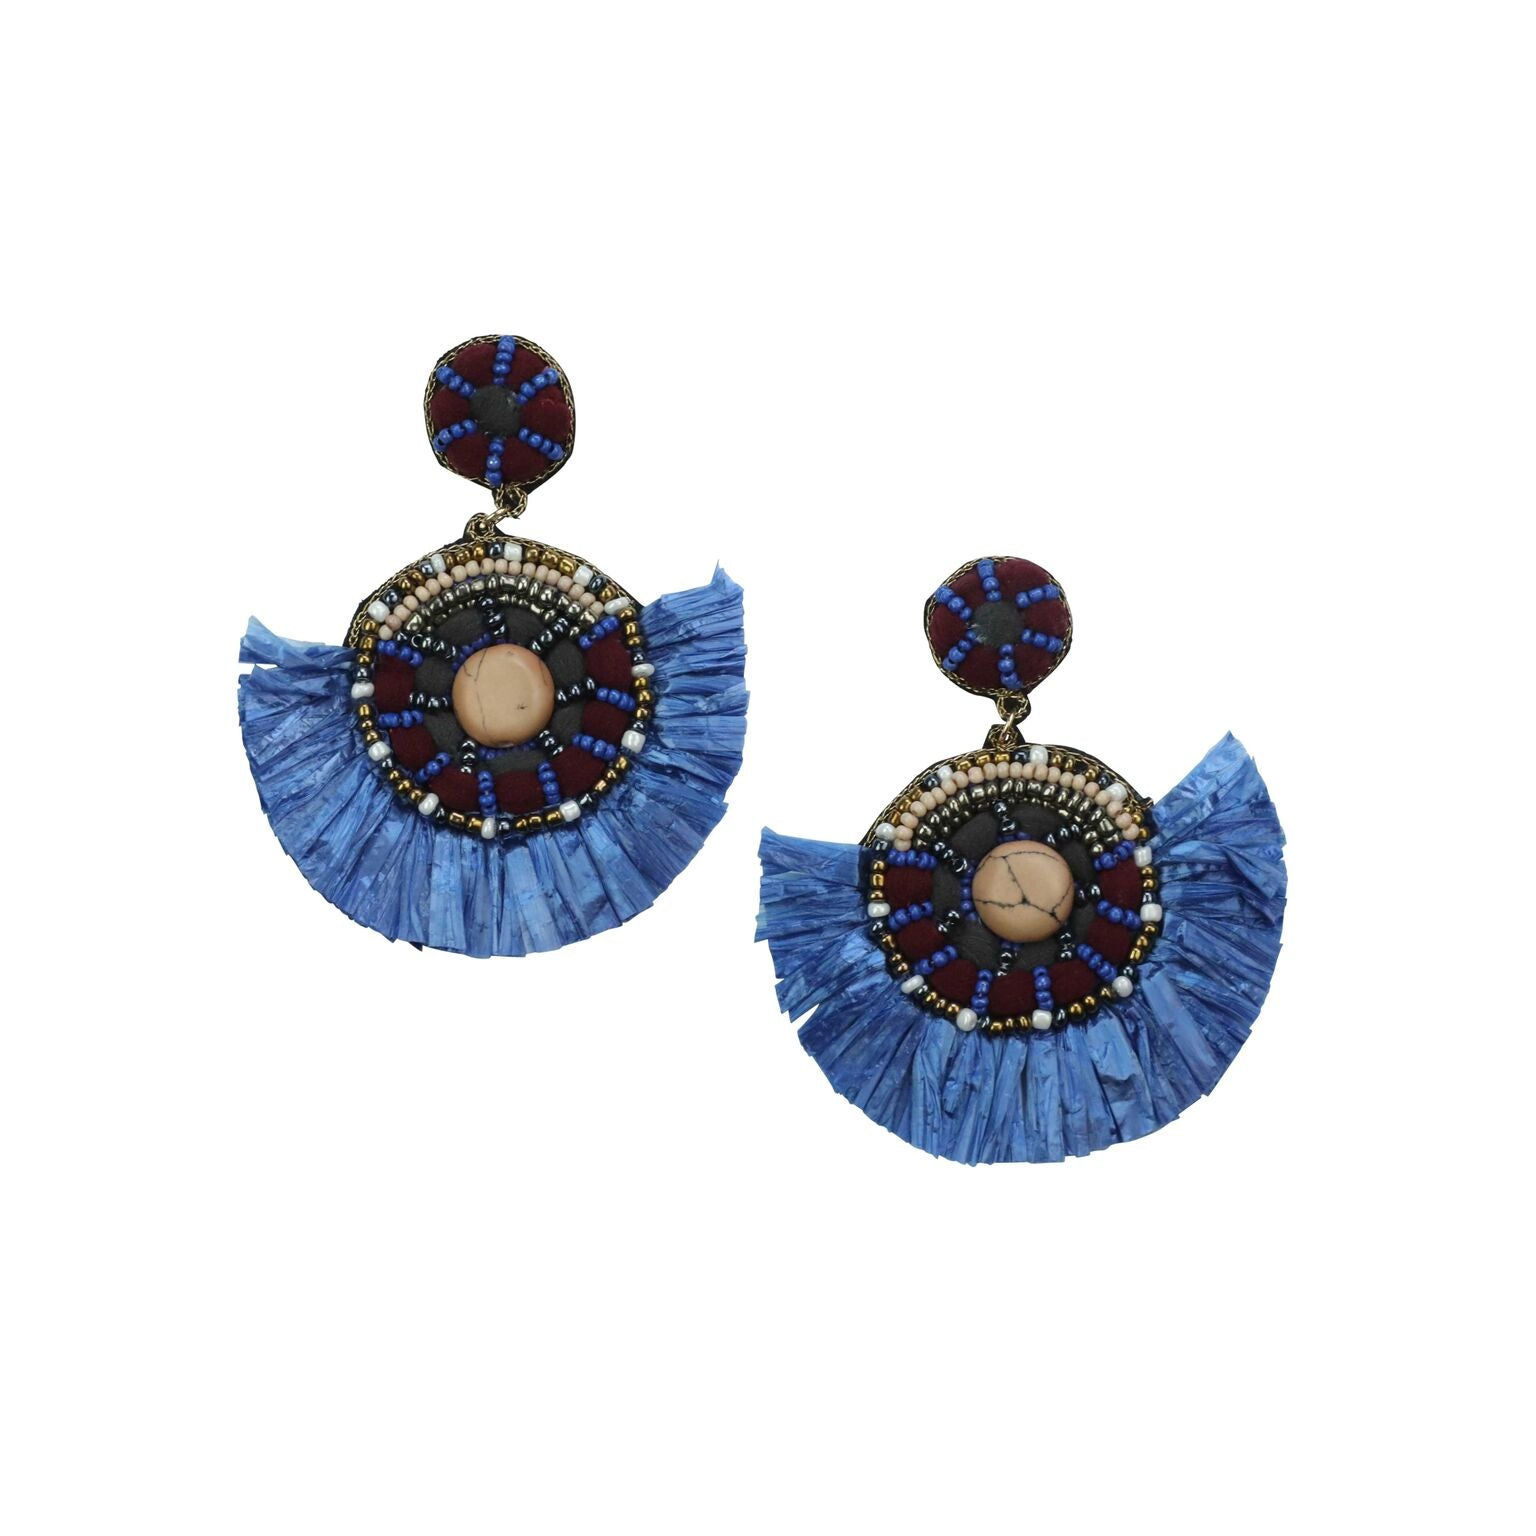 FRINGE EARRINGS - BLUE & WINE